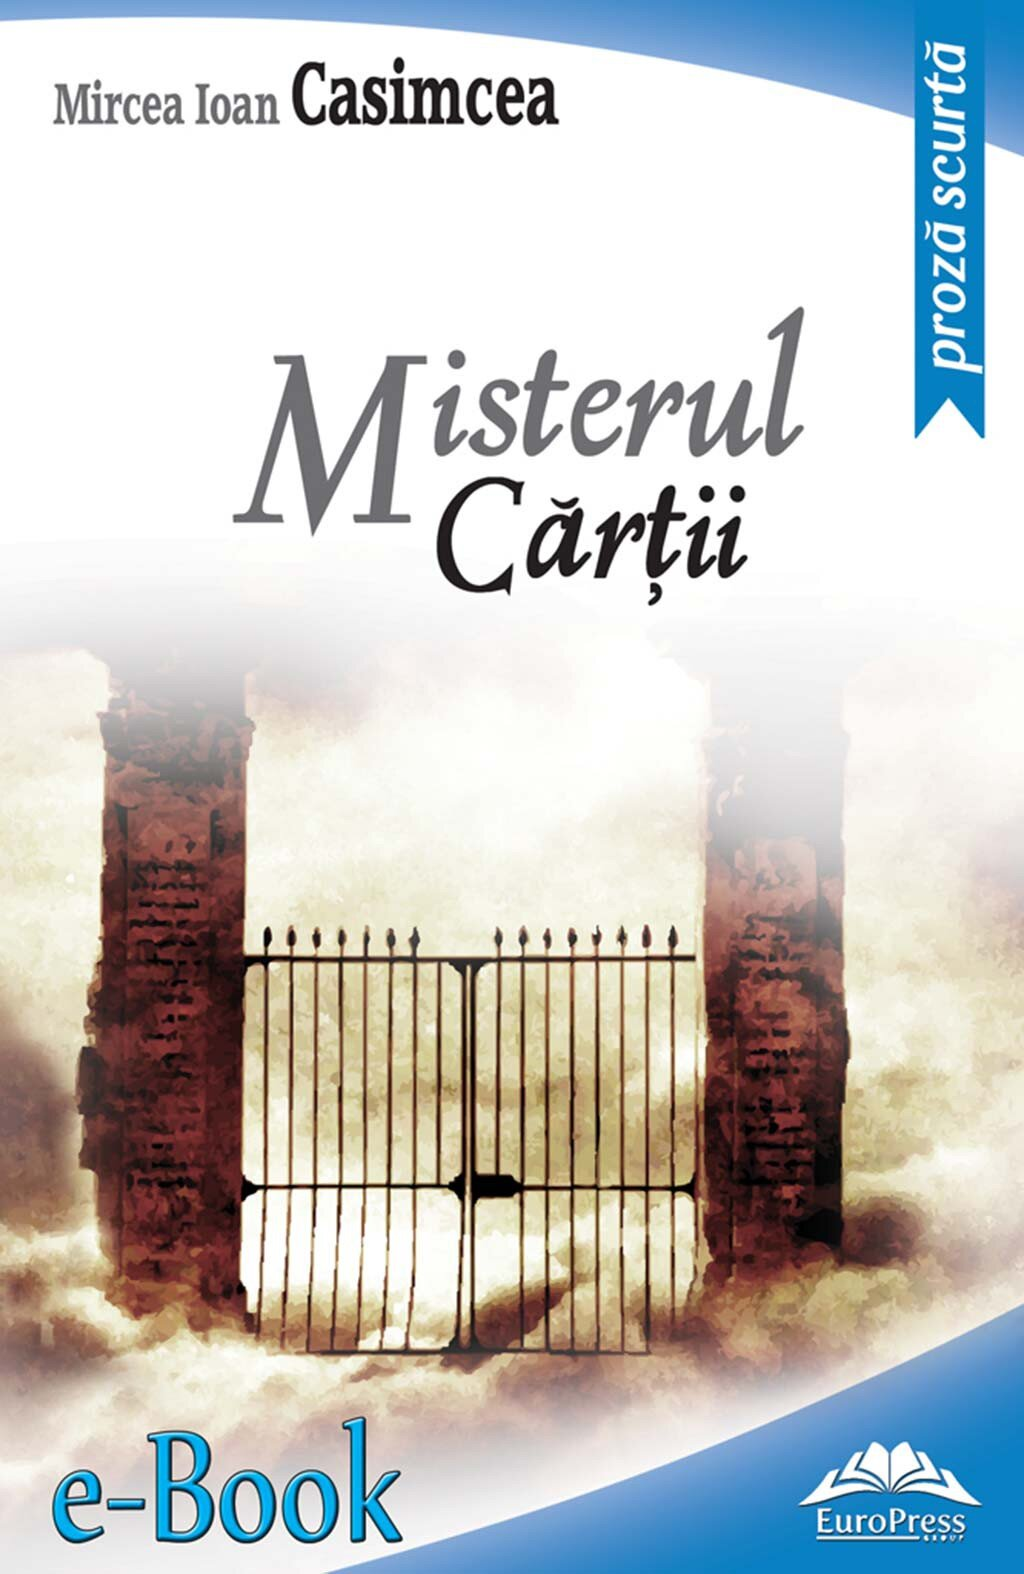 Misterul cartii (eBook)